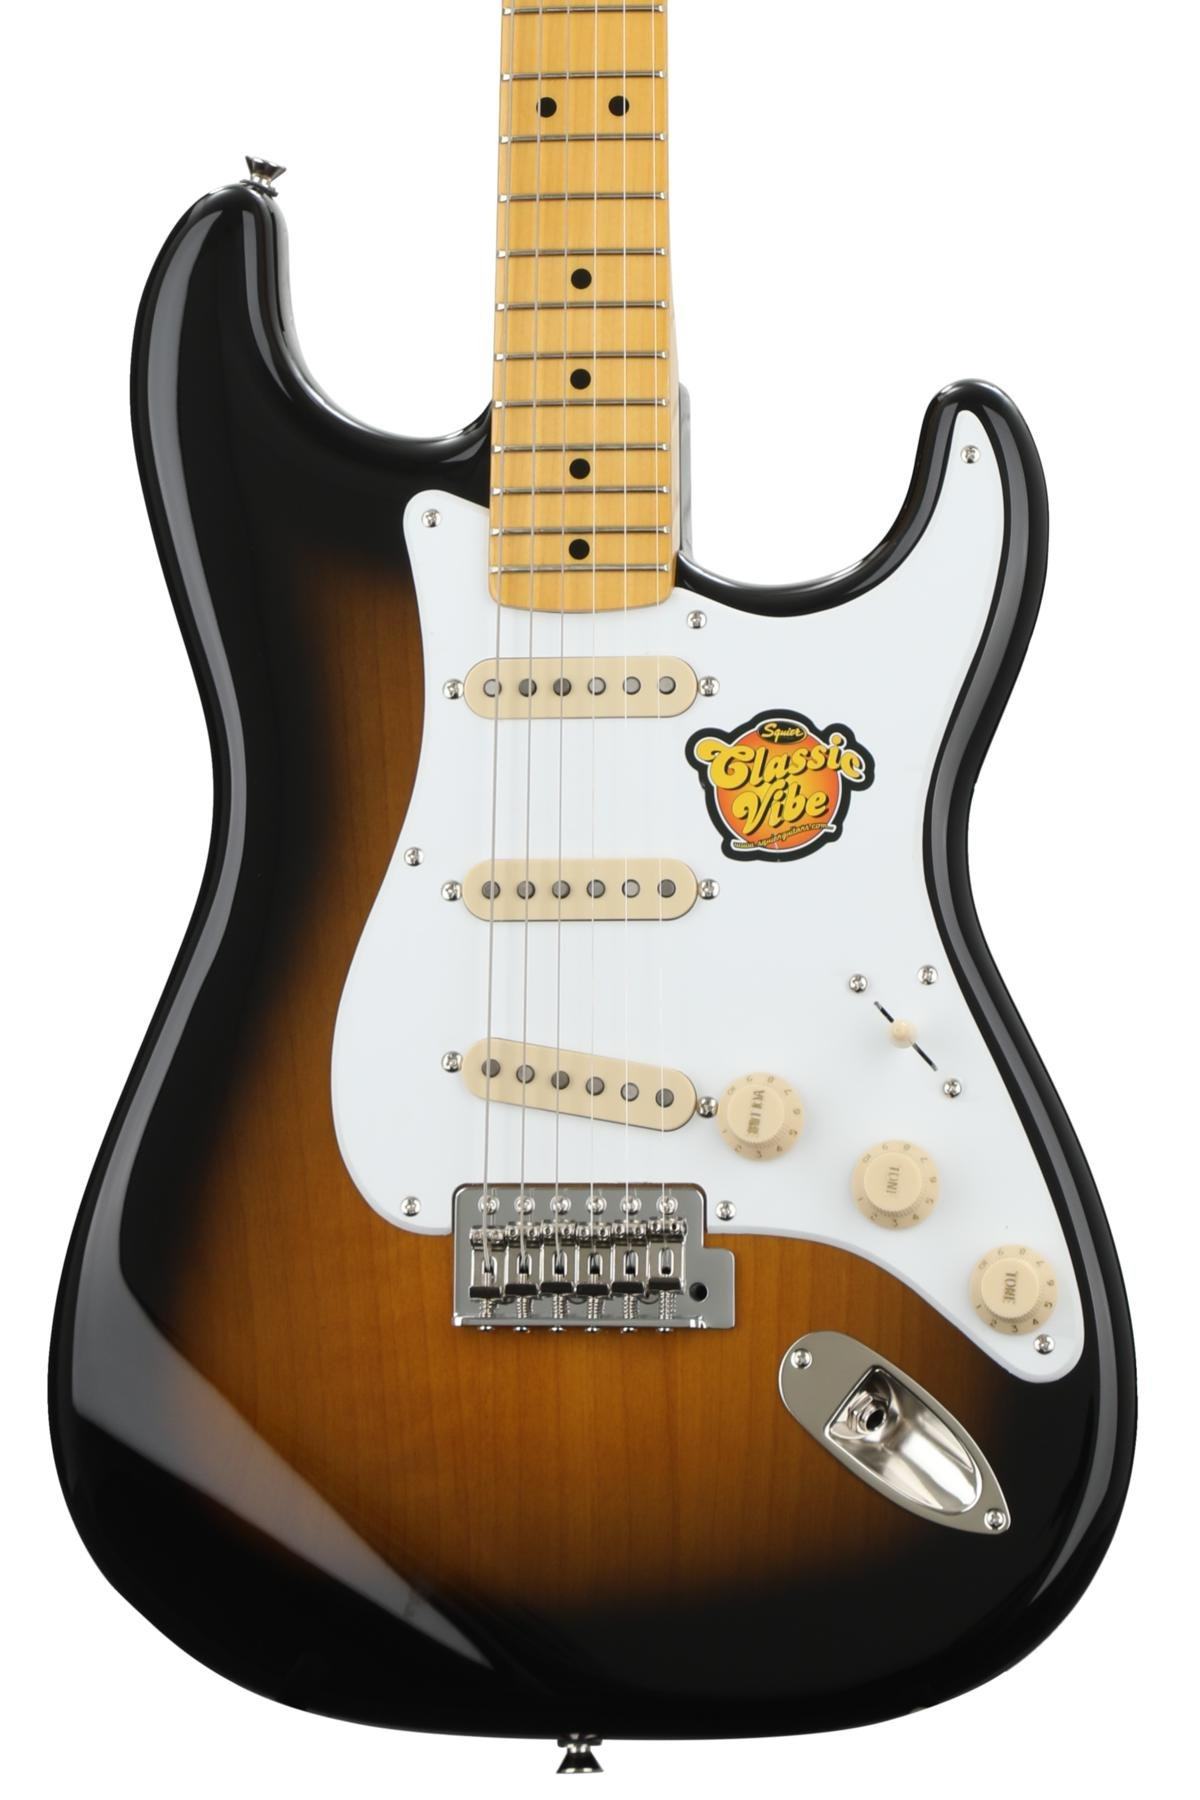 Squier Classic Vibe Stratocaster \'50s - 2-tone Sunburst   Sweetwater